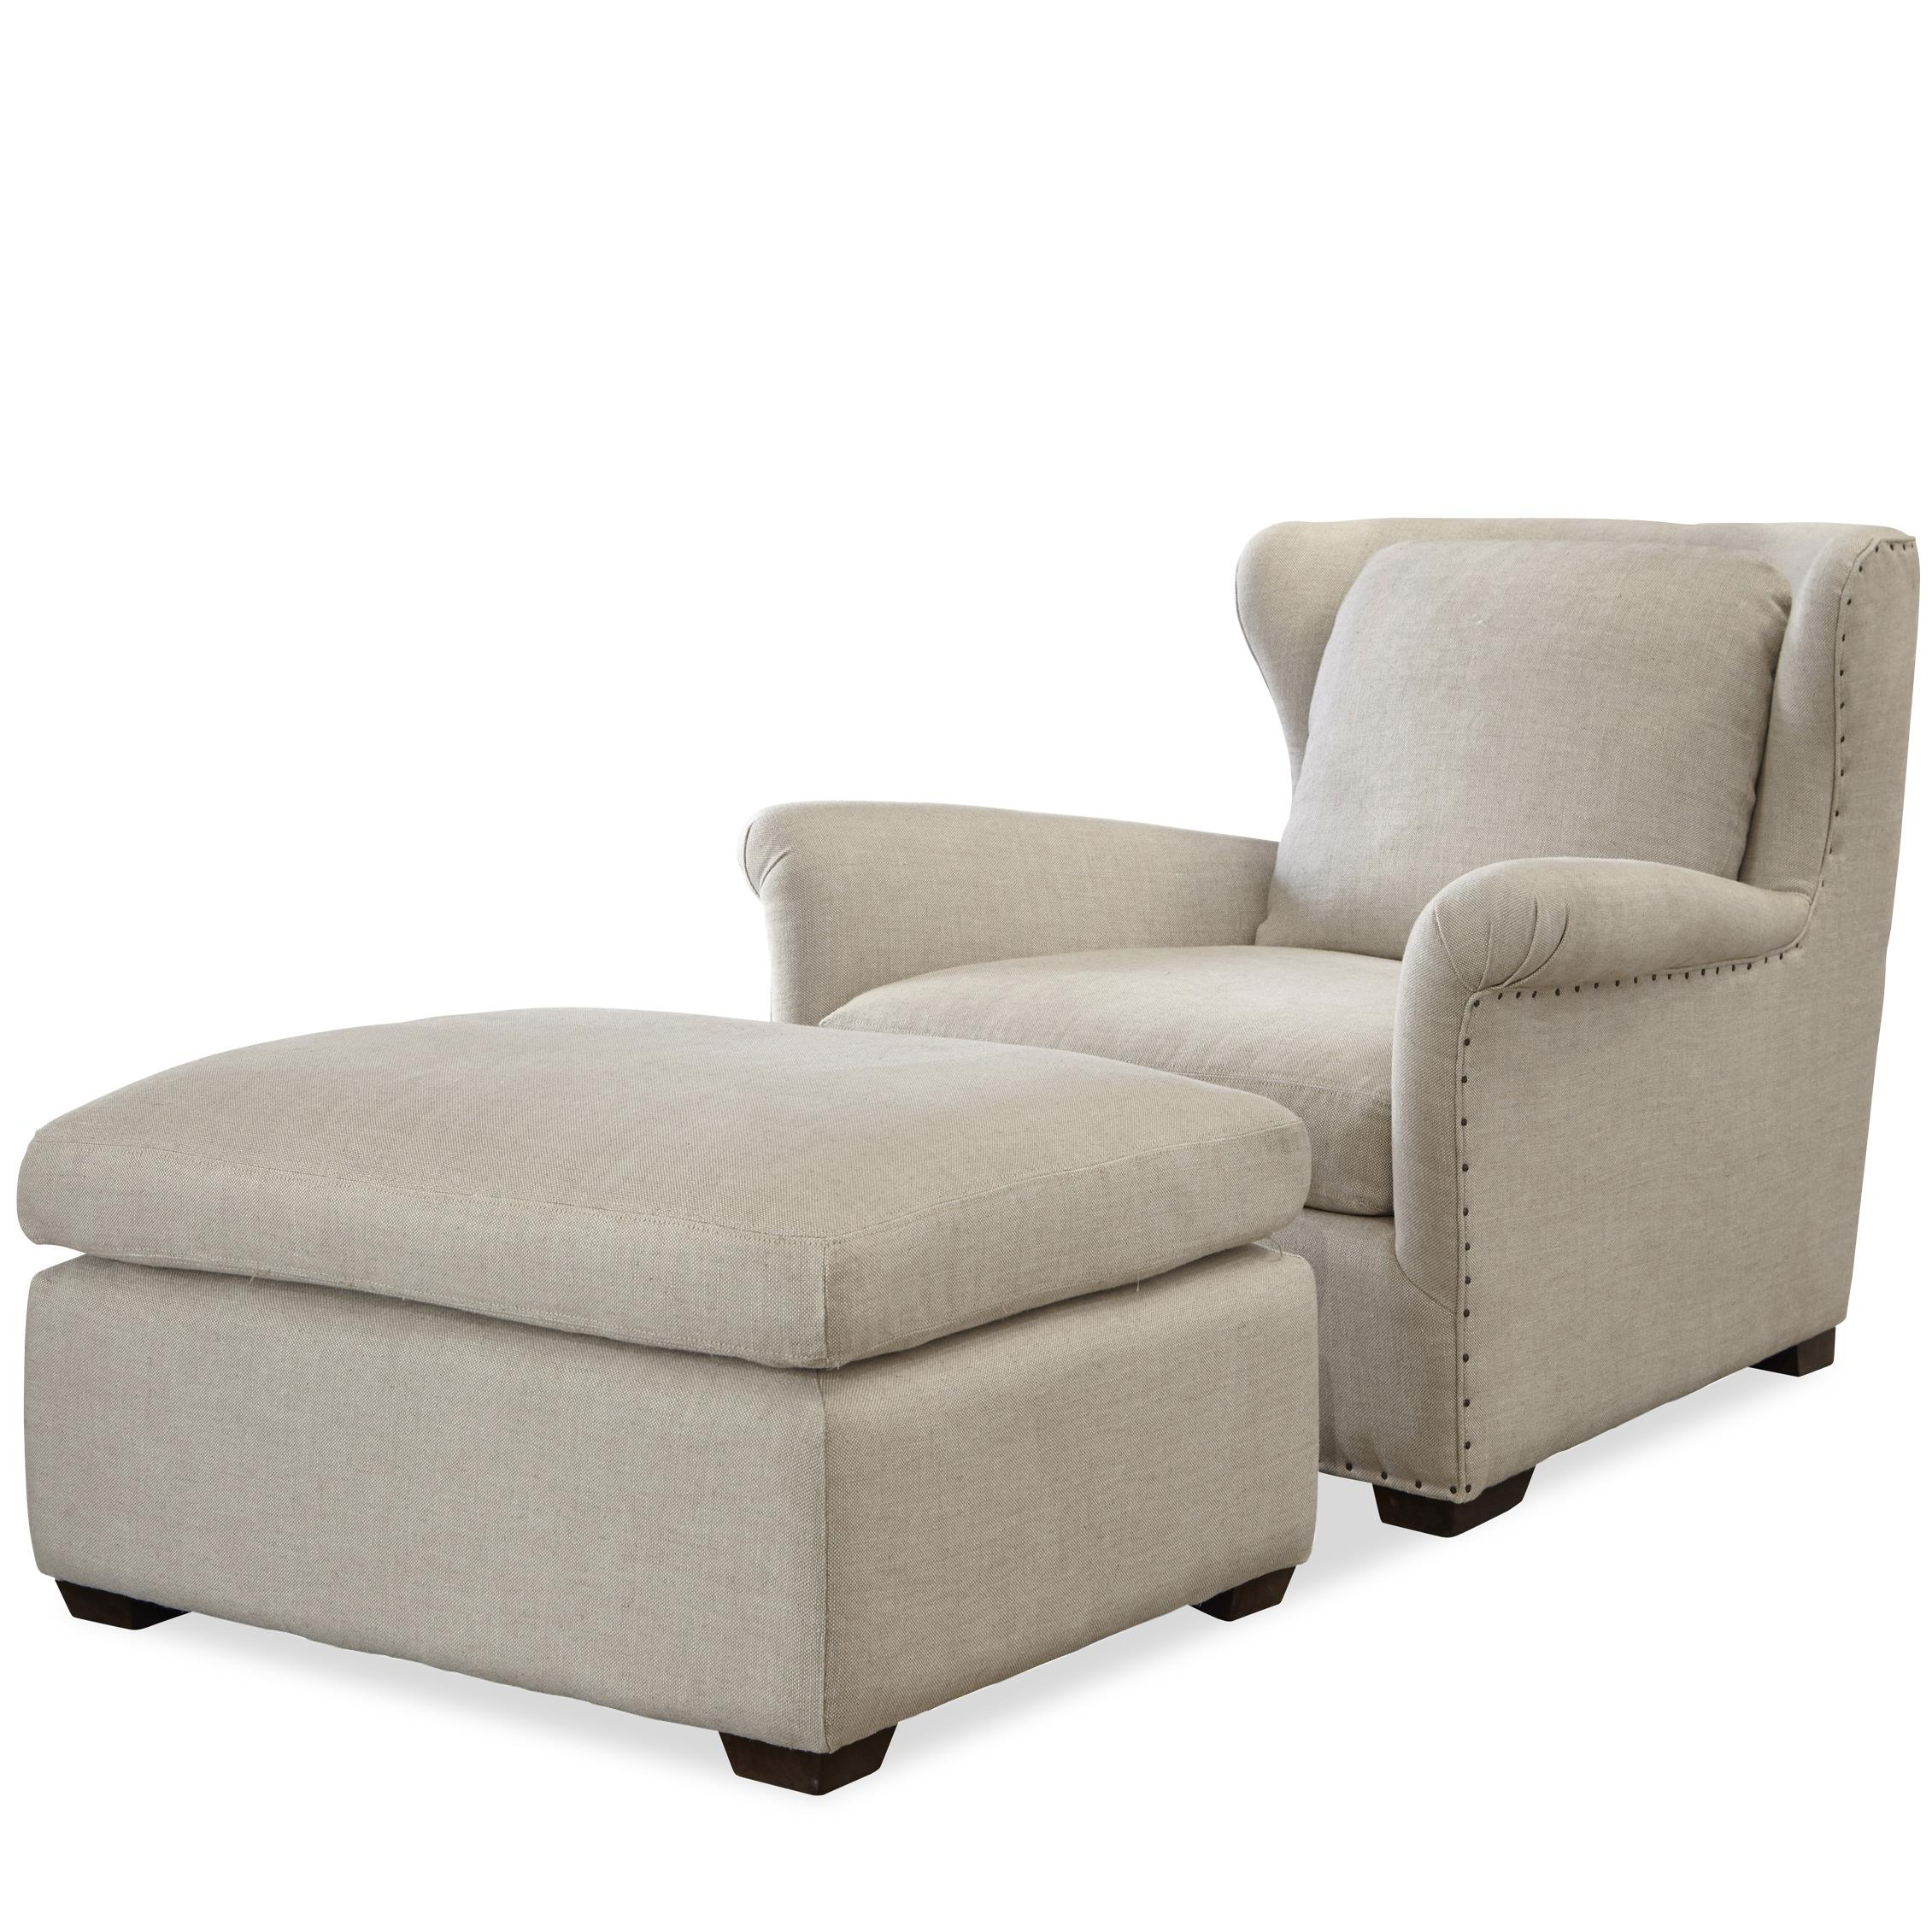 Universal Haven Transitional Chair And Ottoman Set With